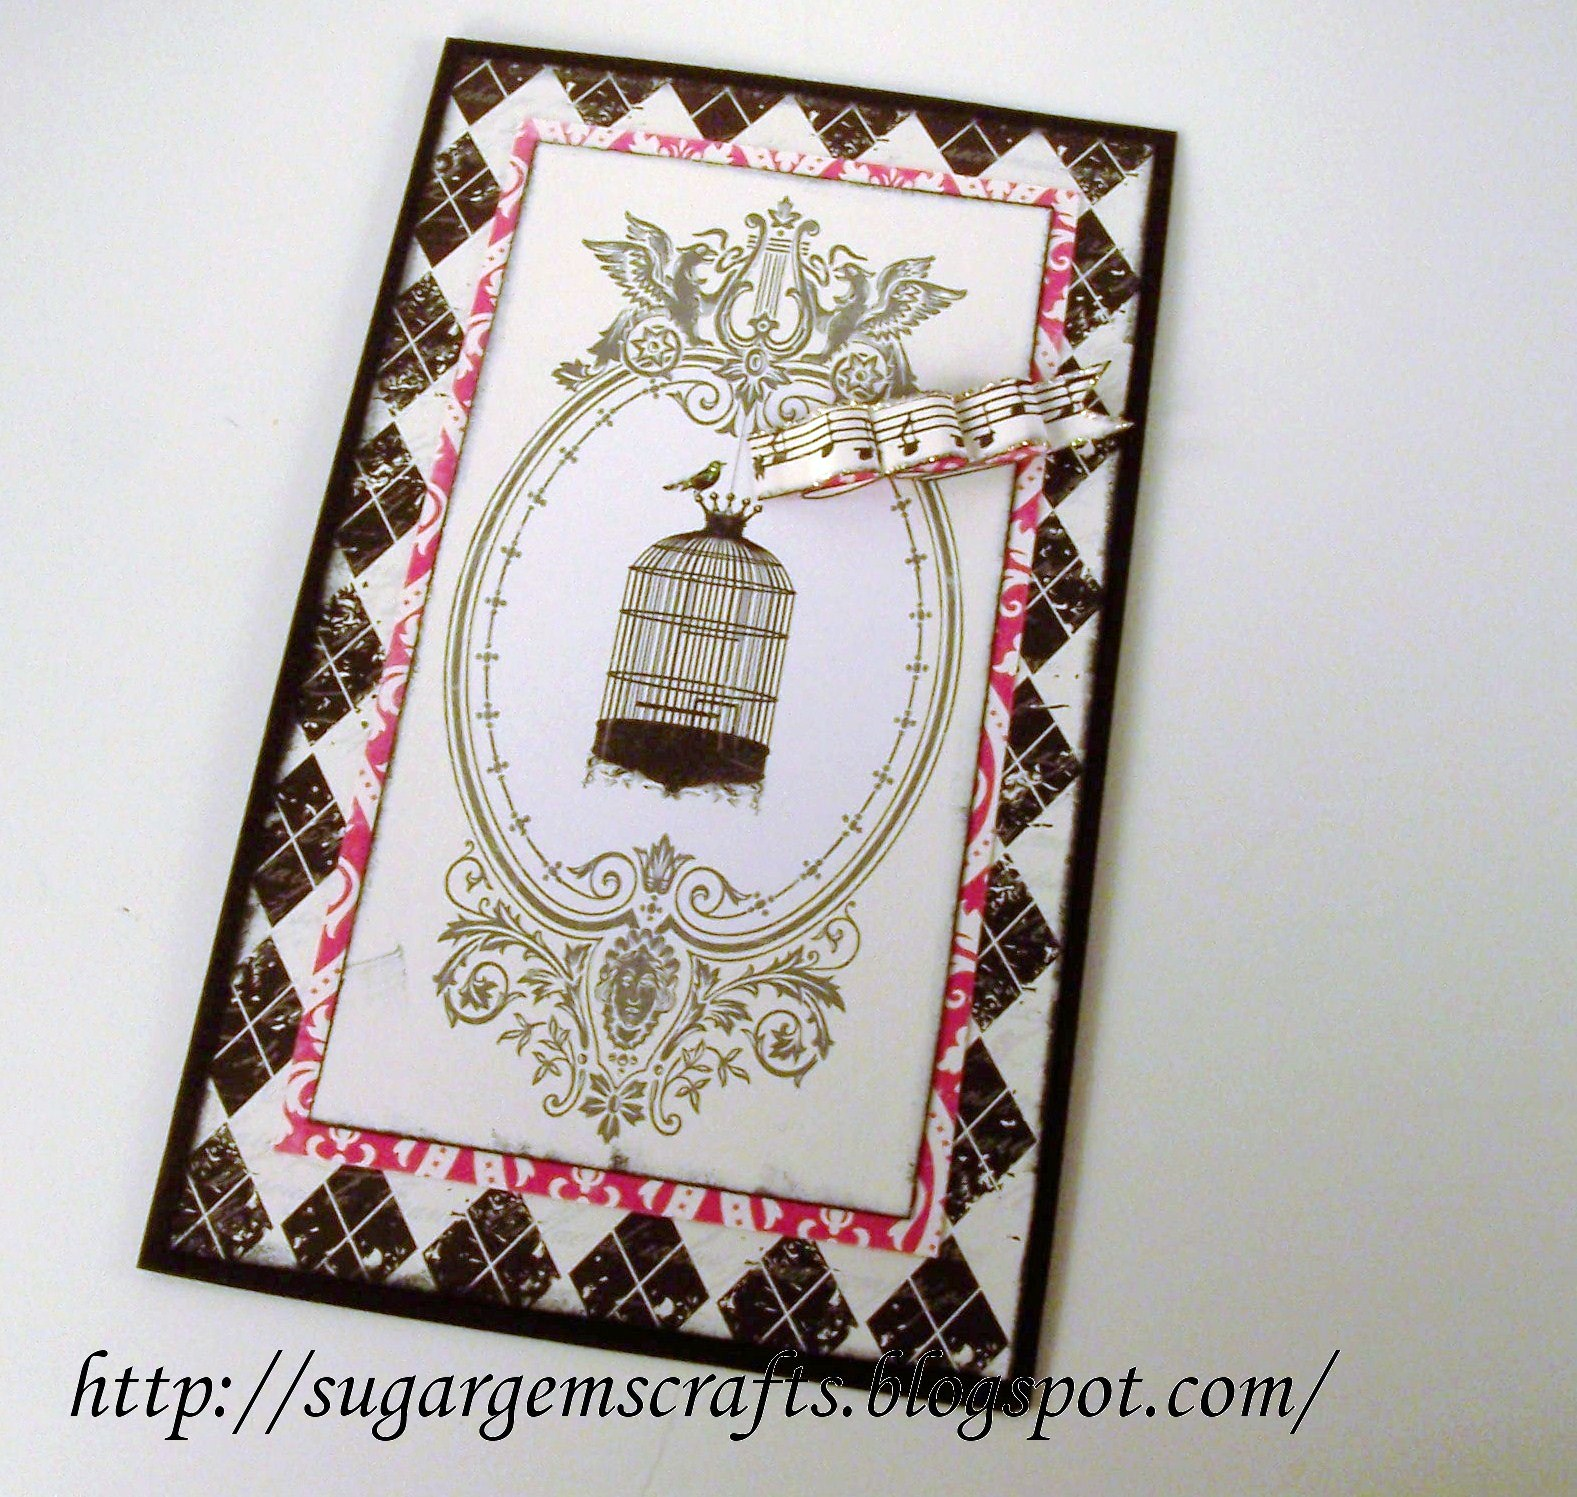 There Use Coupon Code 10CL11. .Walmart Bonus Offer Code Greeting Cards